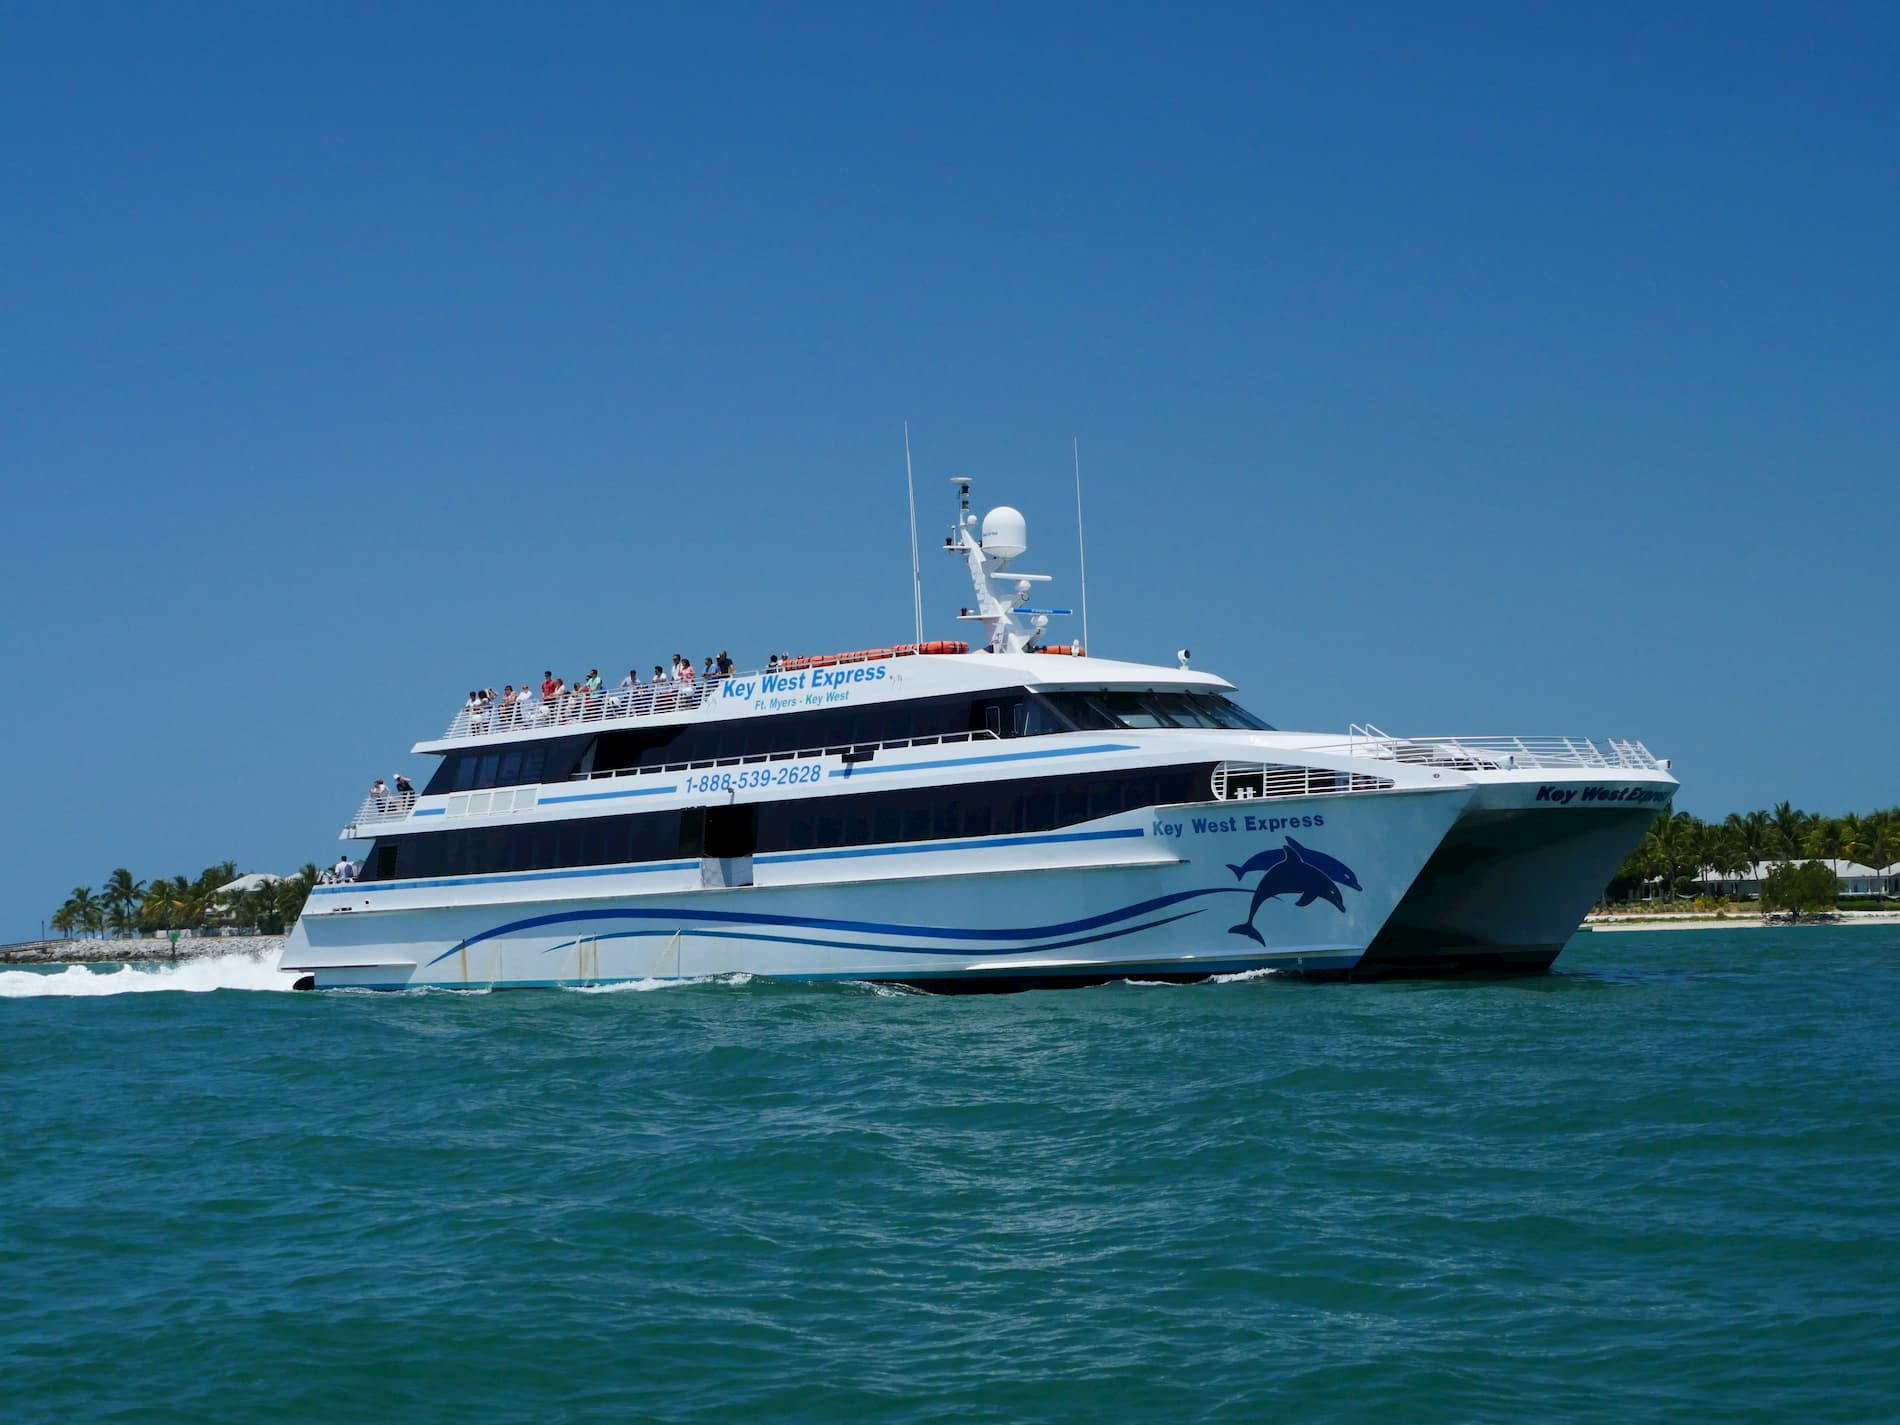 Key West Express in Key West Harbor